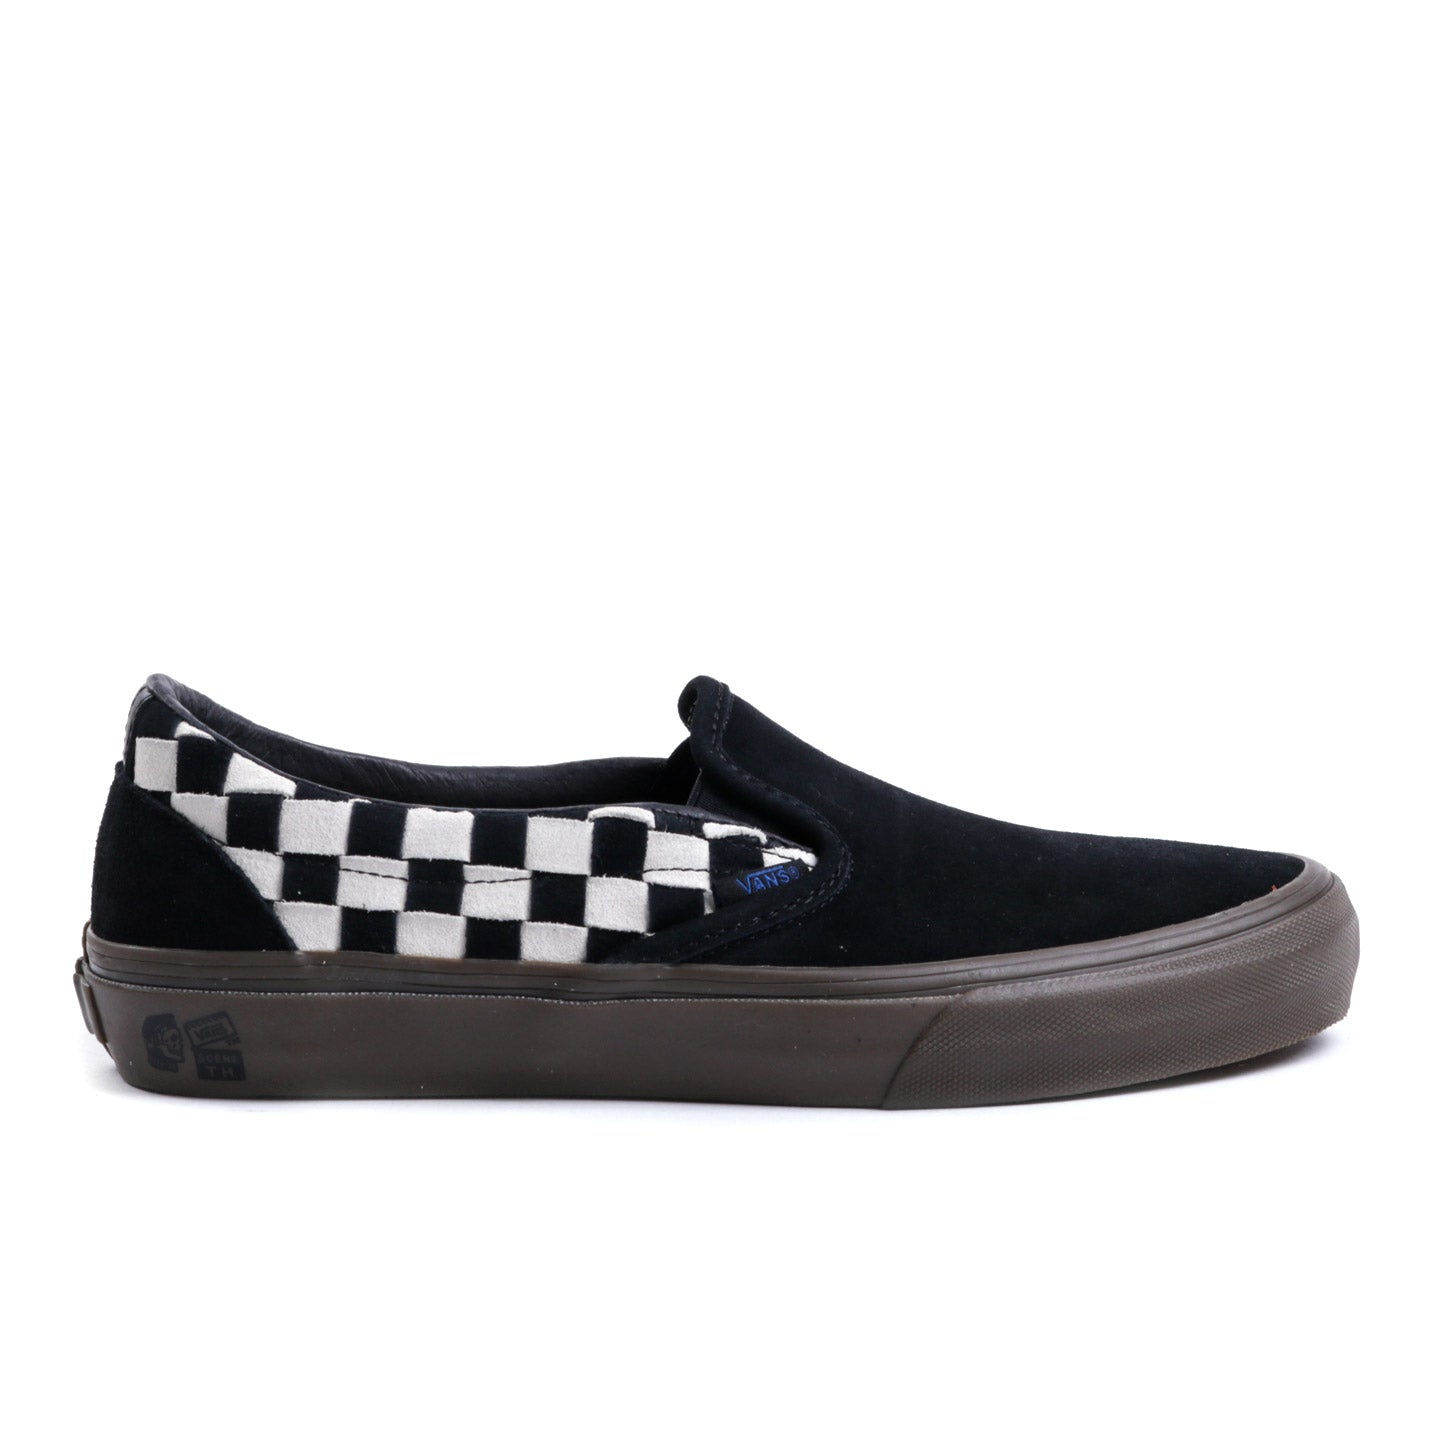 VAULT BY VANS TH SLIP-ON LX WOVEN SUEDE CHECKERBOARD / BLACK